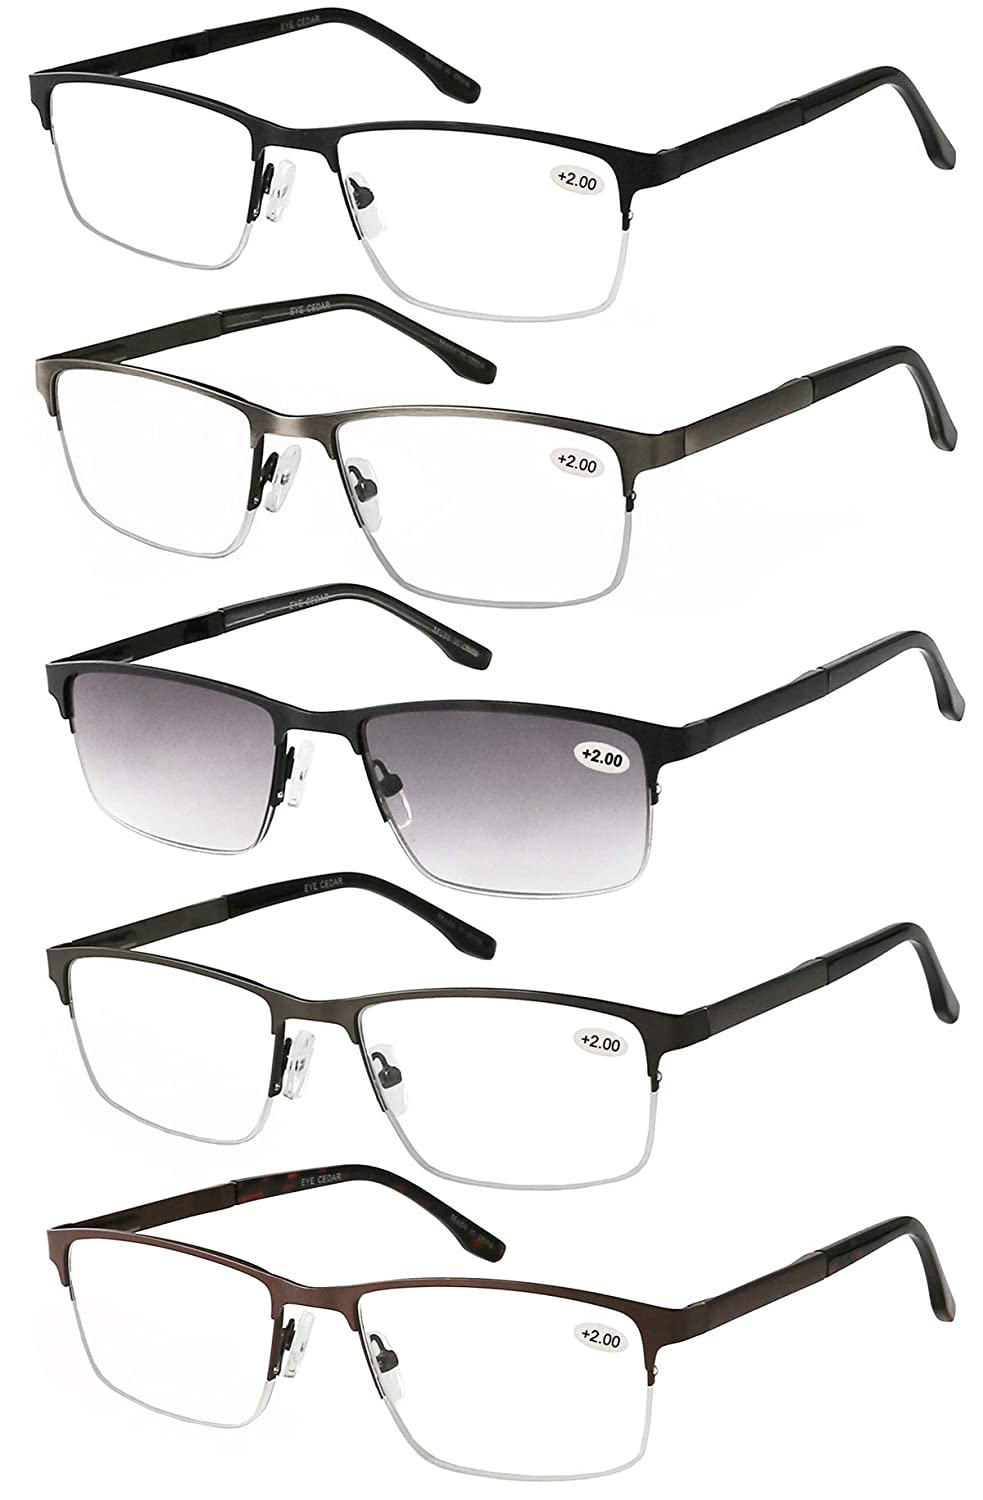 7f79c7e33e3 Amcedar 5-Pack Half-Frame Reading Glasses Men Rectangle Style Stainless  Steel Material Spring Hinges Readers +2.00  Amazon.co.uk  Health   Personal  Care